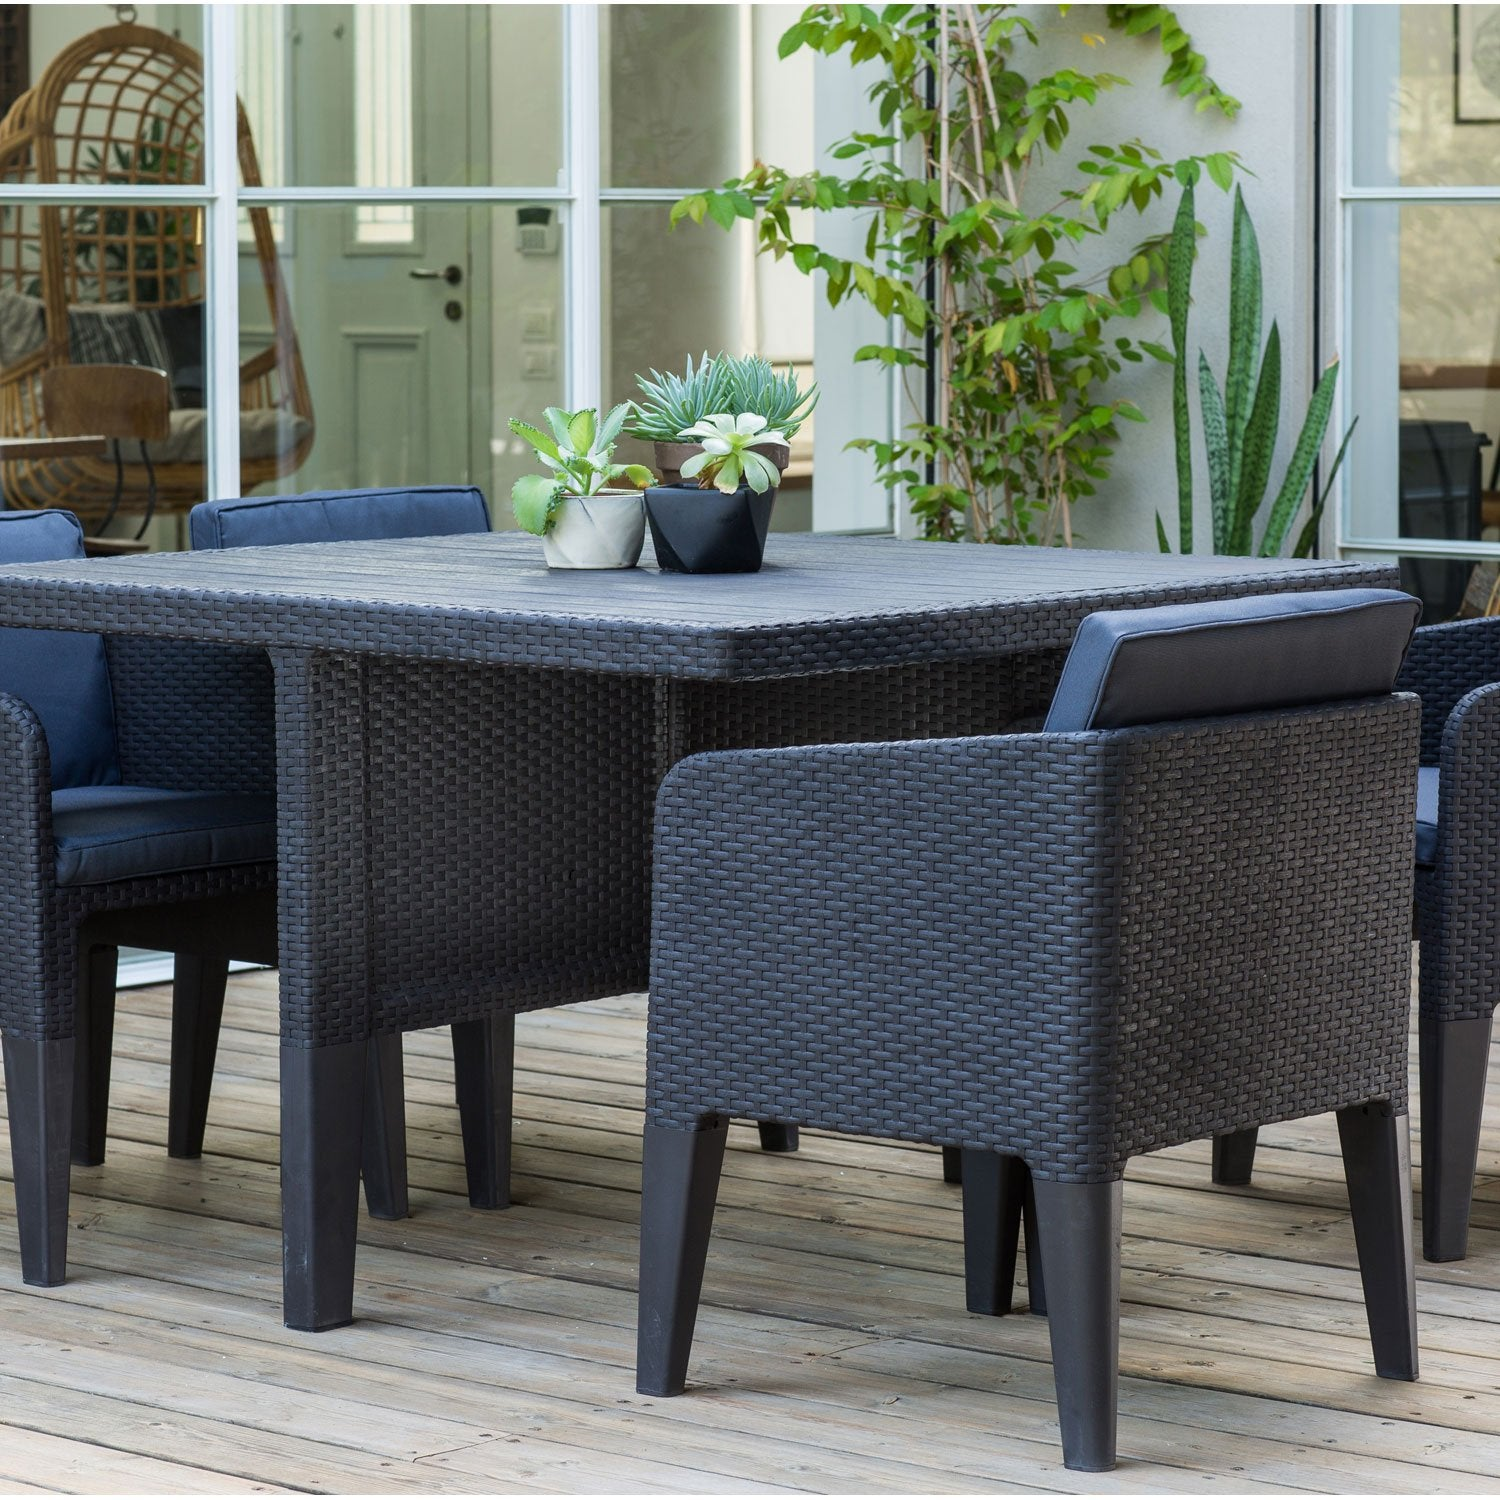 Salon De Jardin Anthracite Maison Design